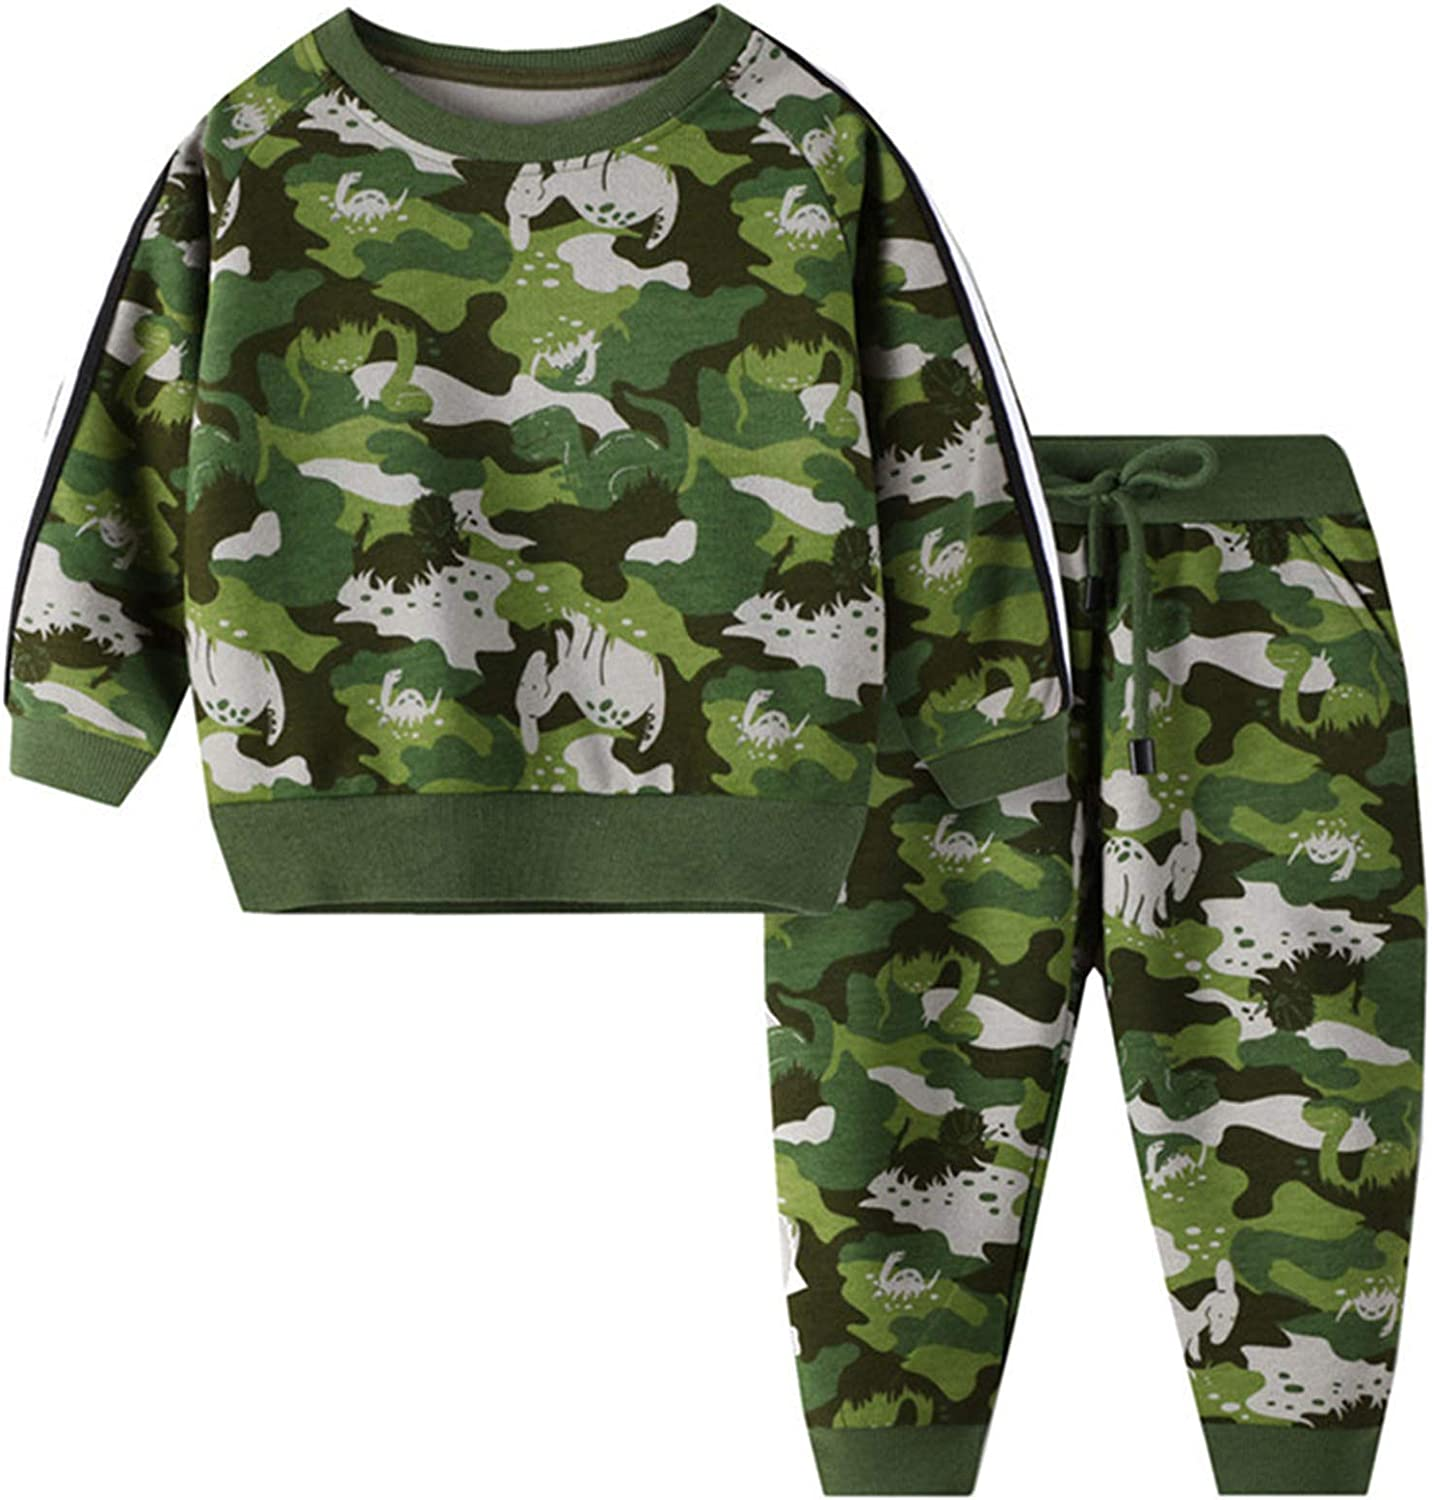 inhzoy Kids Girls Boys Sweatshirts Tops with Pants Set Sport Casual Outfits Exercise Tracksuit Activewear